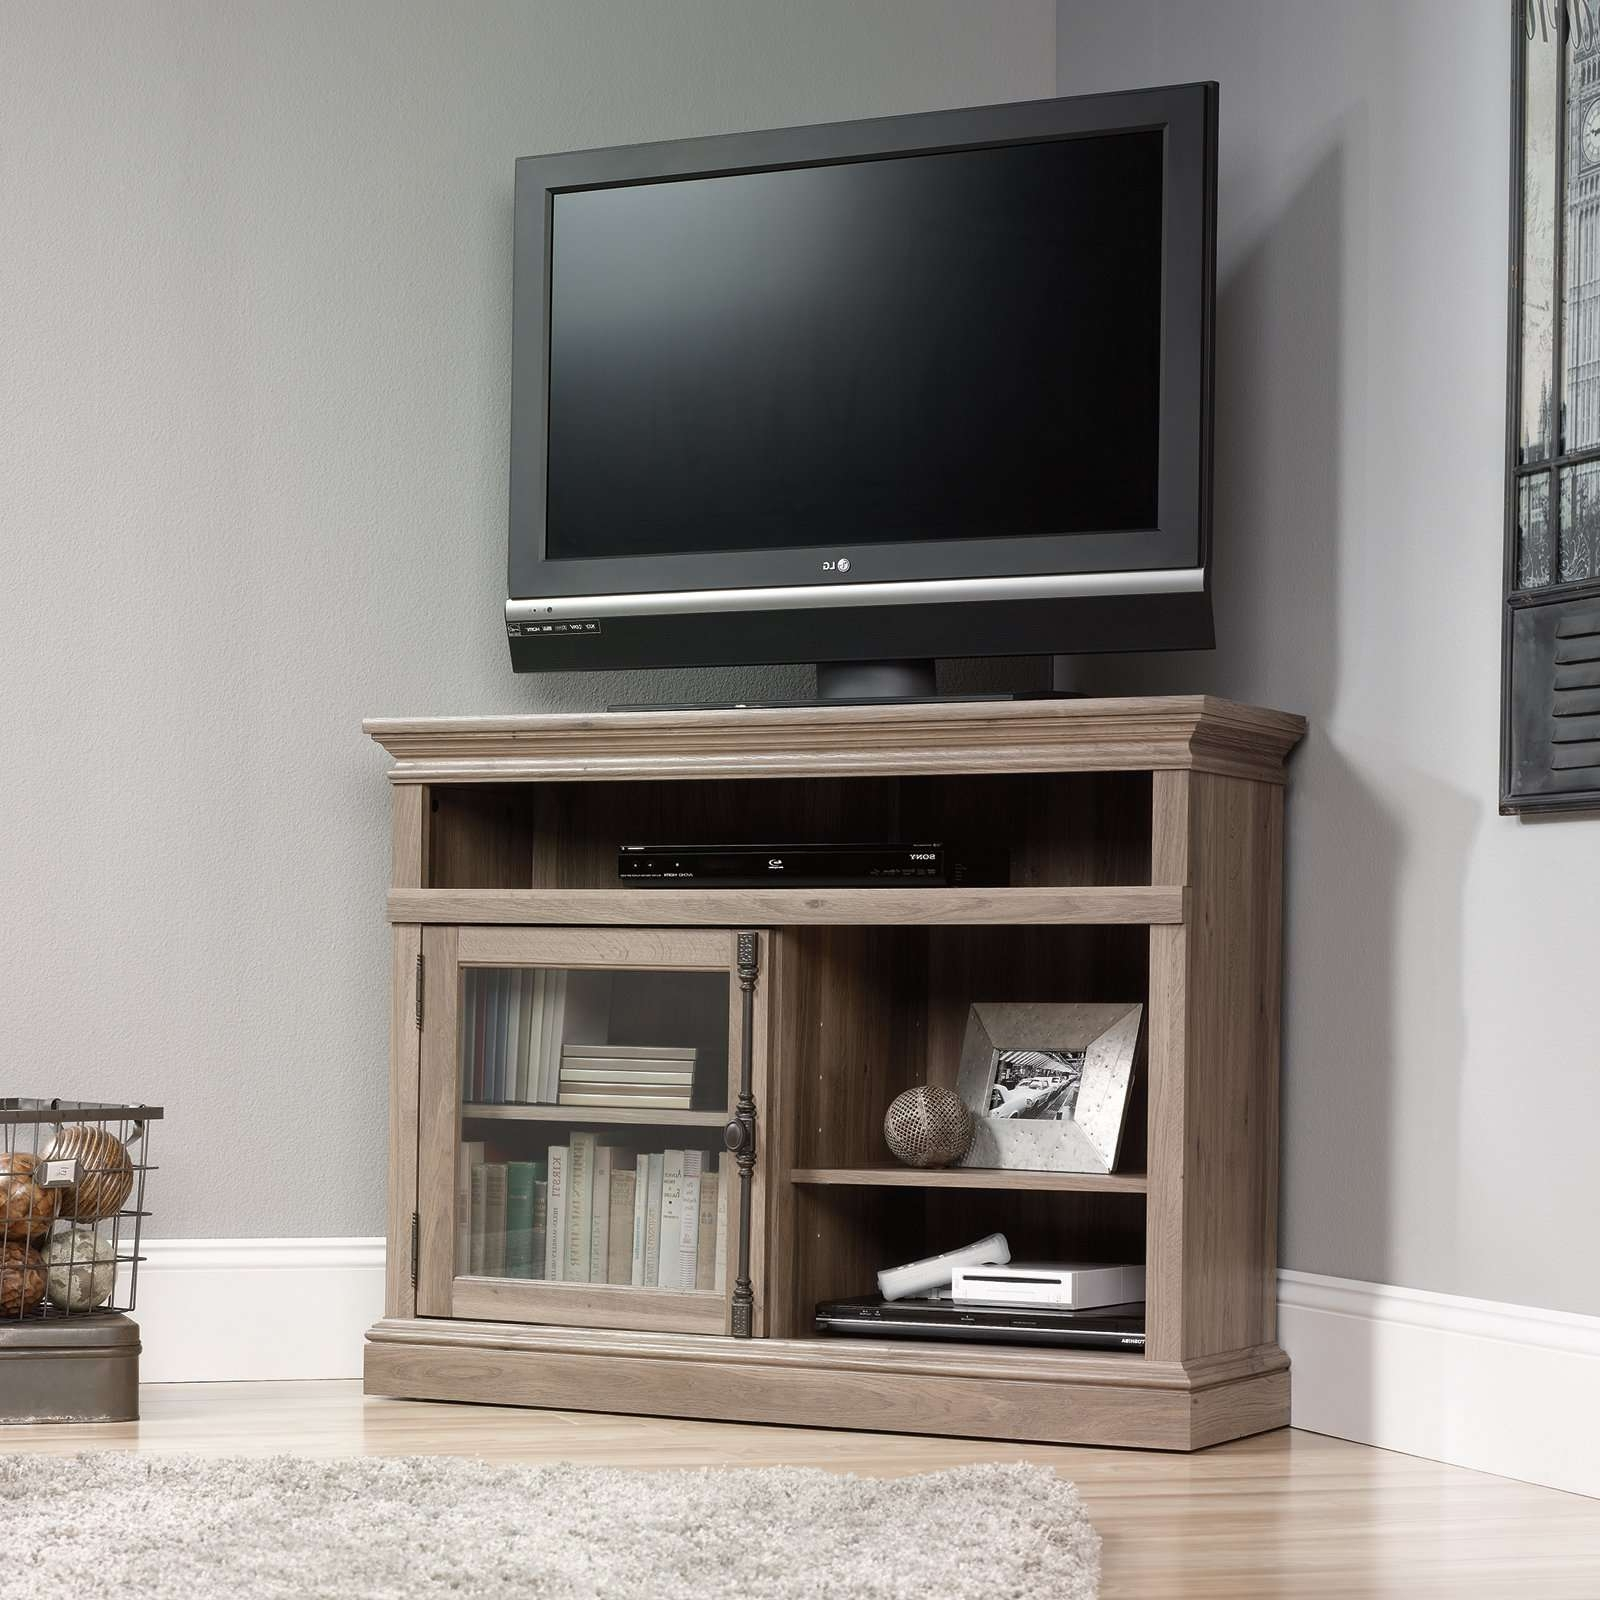 Tv : Cheap Oak Tv Stands Charming' Glorious Cheap Wooden Tv Stands Pertaining To Cheap Oak Tv Stands (View 12 of 15)